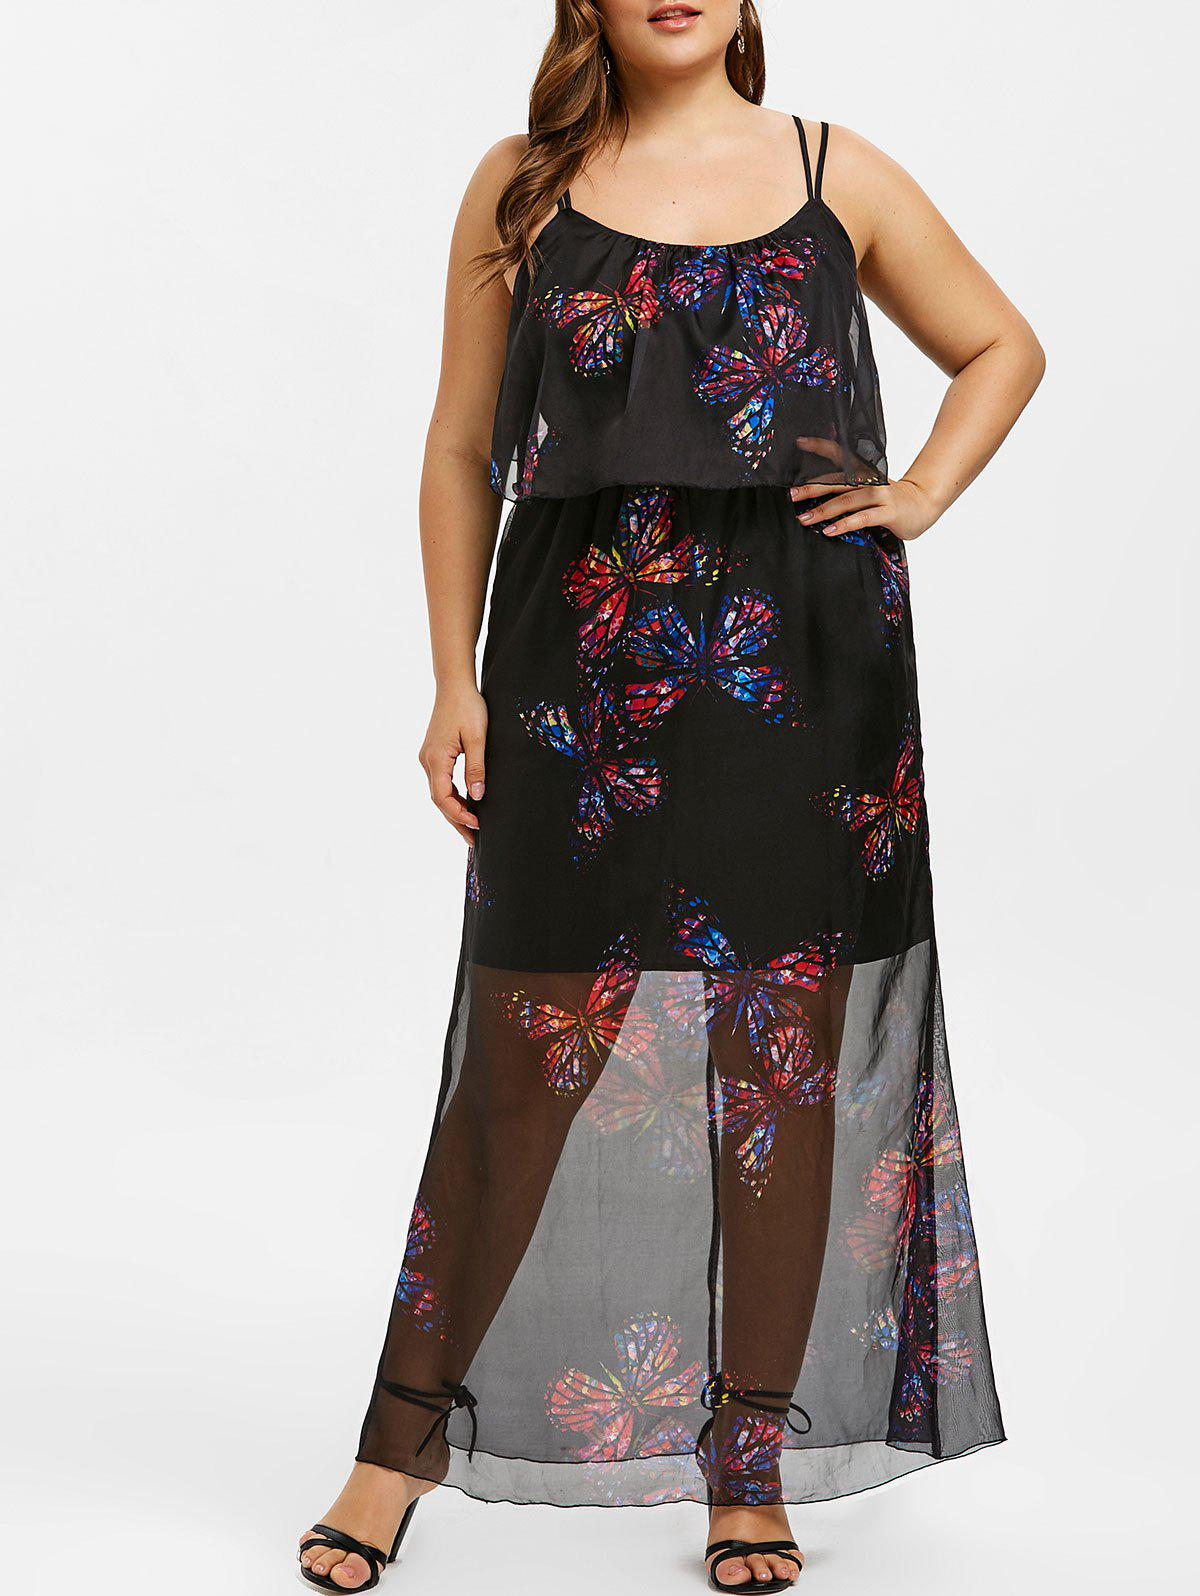 bc9f34261f3 29% OFF] Butterfly Print Flounce Plus Size Cami Dress | Rosegal